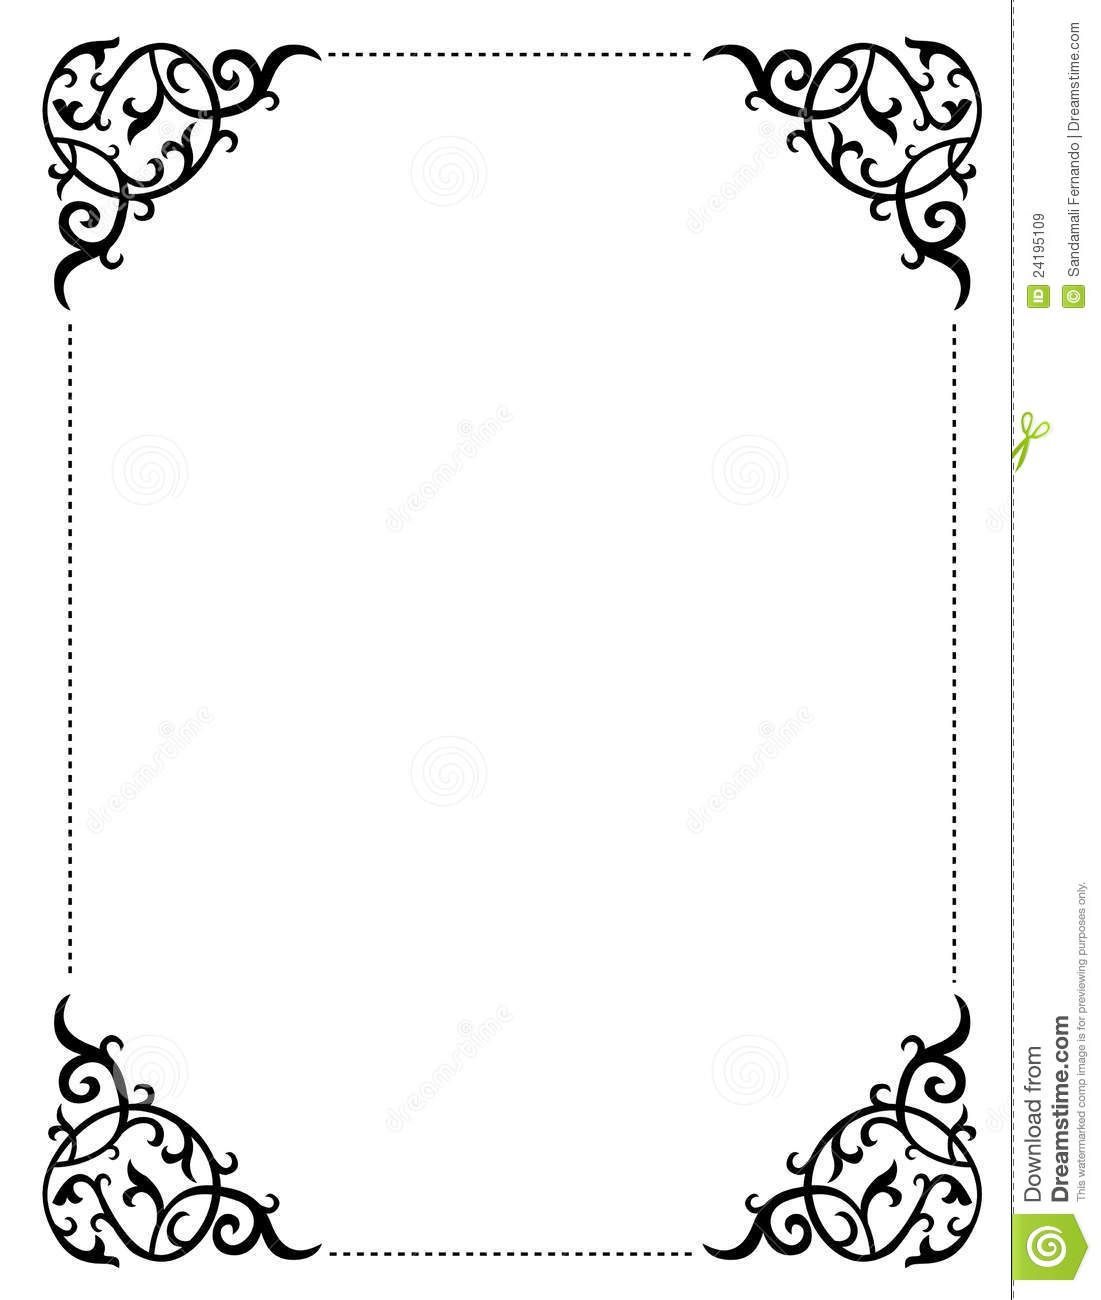 hight resolution of free printable wedding clip art borders and backgrounds invitation